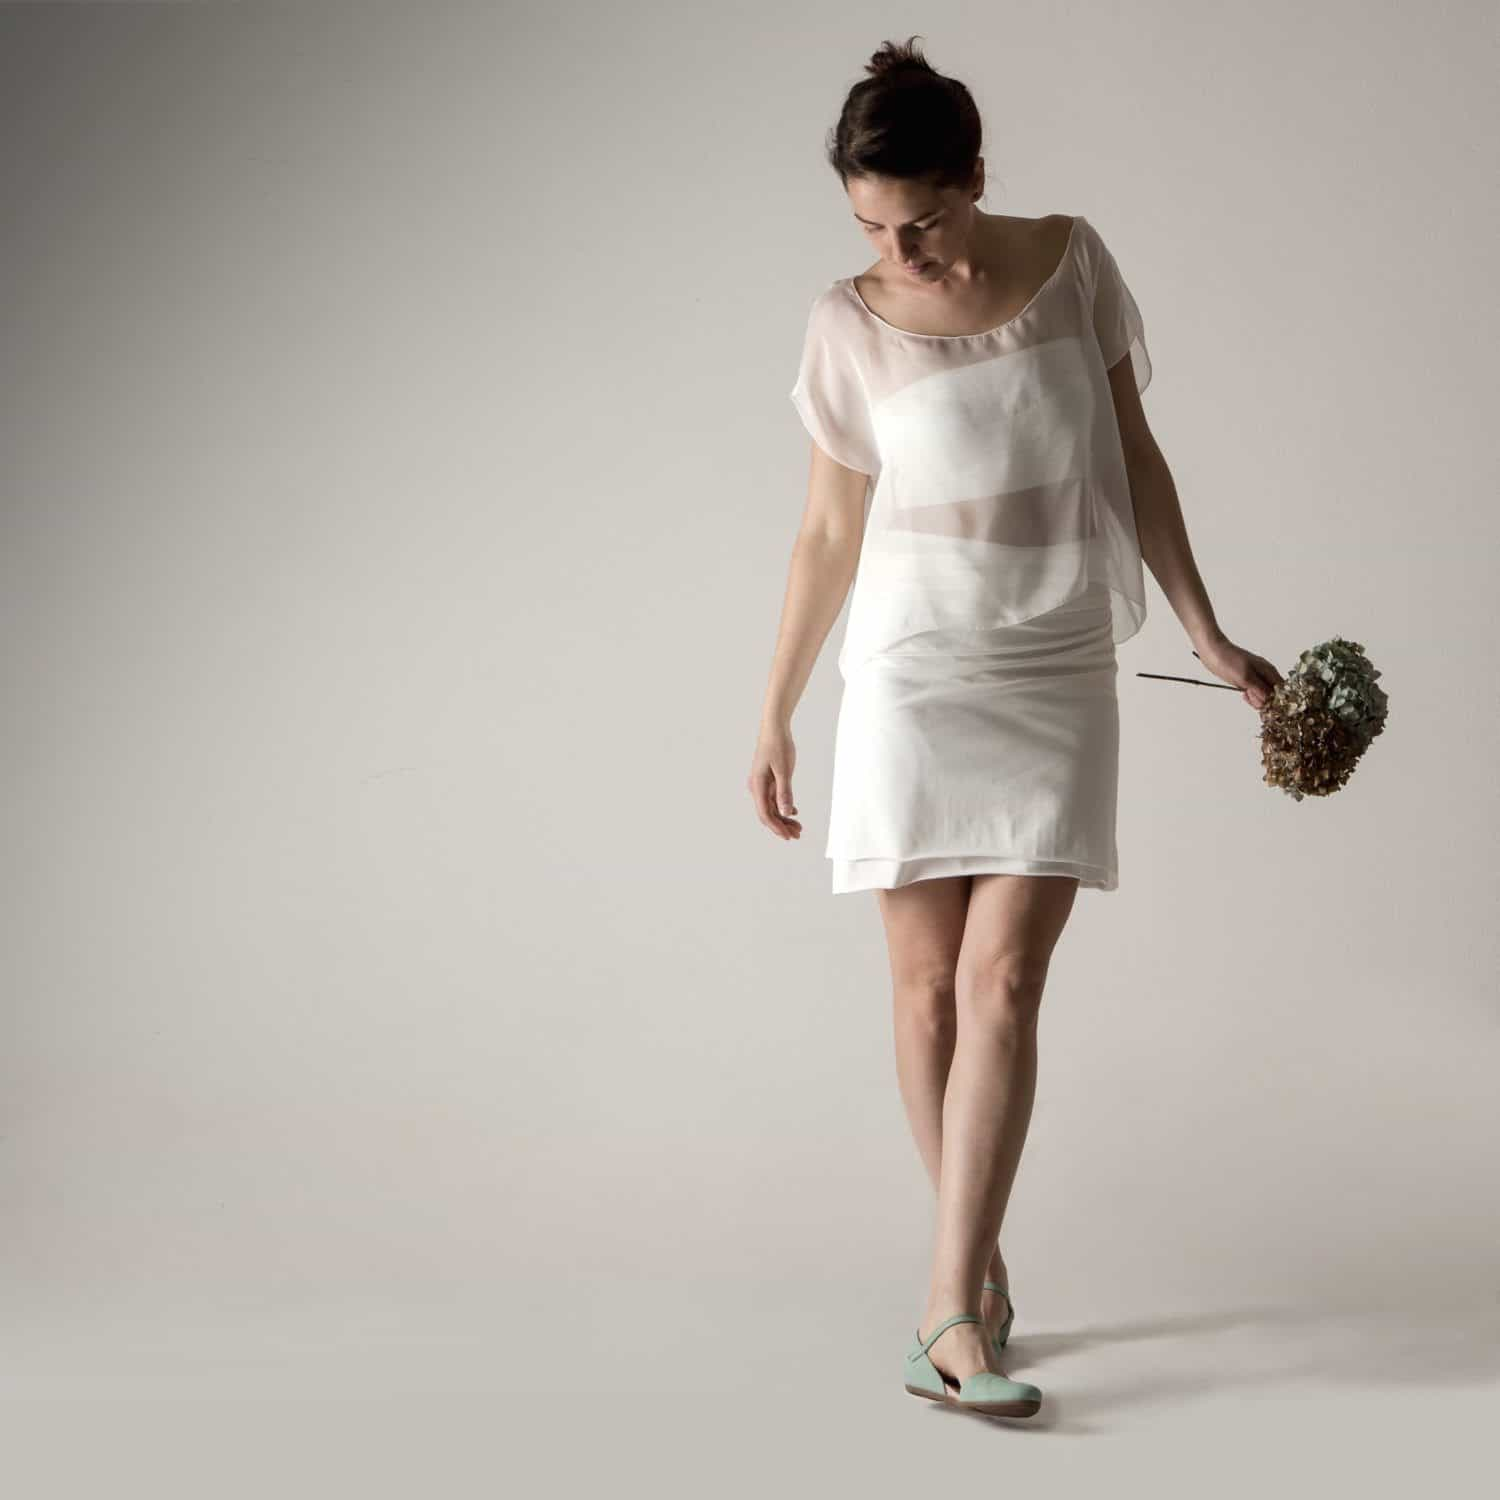 Alyssum ~ Simple Wedding Outfit - Larimeloom Italian Handmade Clothing